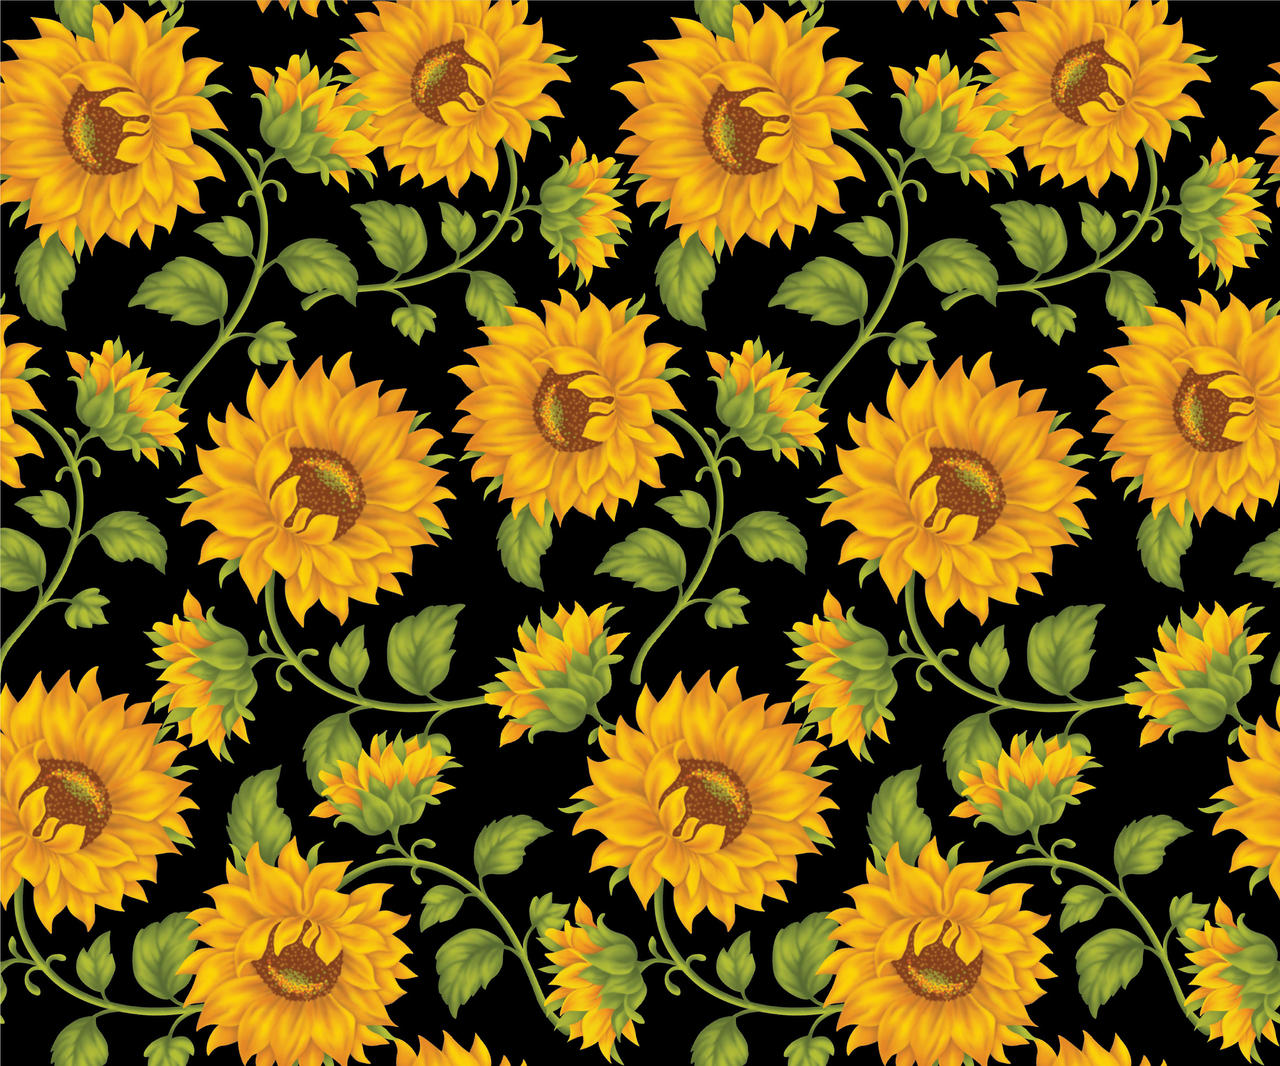 Sunflower Print In Black Background by DonCabanza on ...